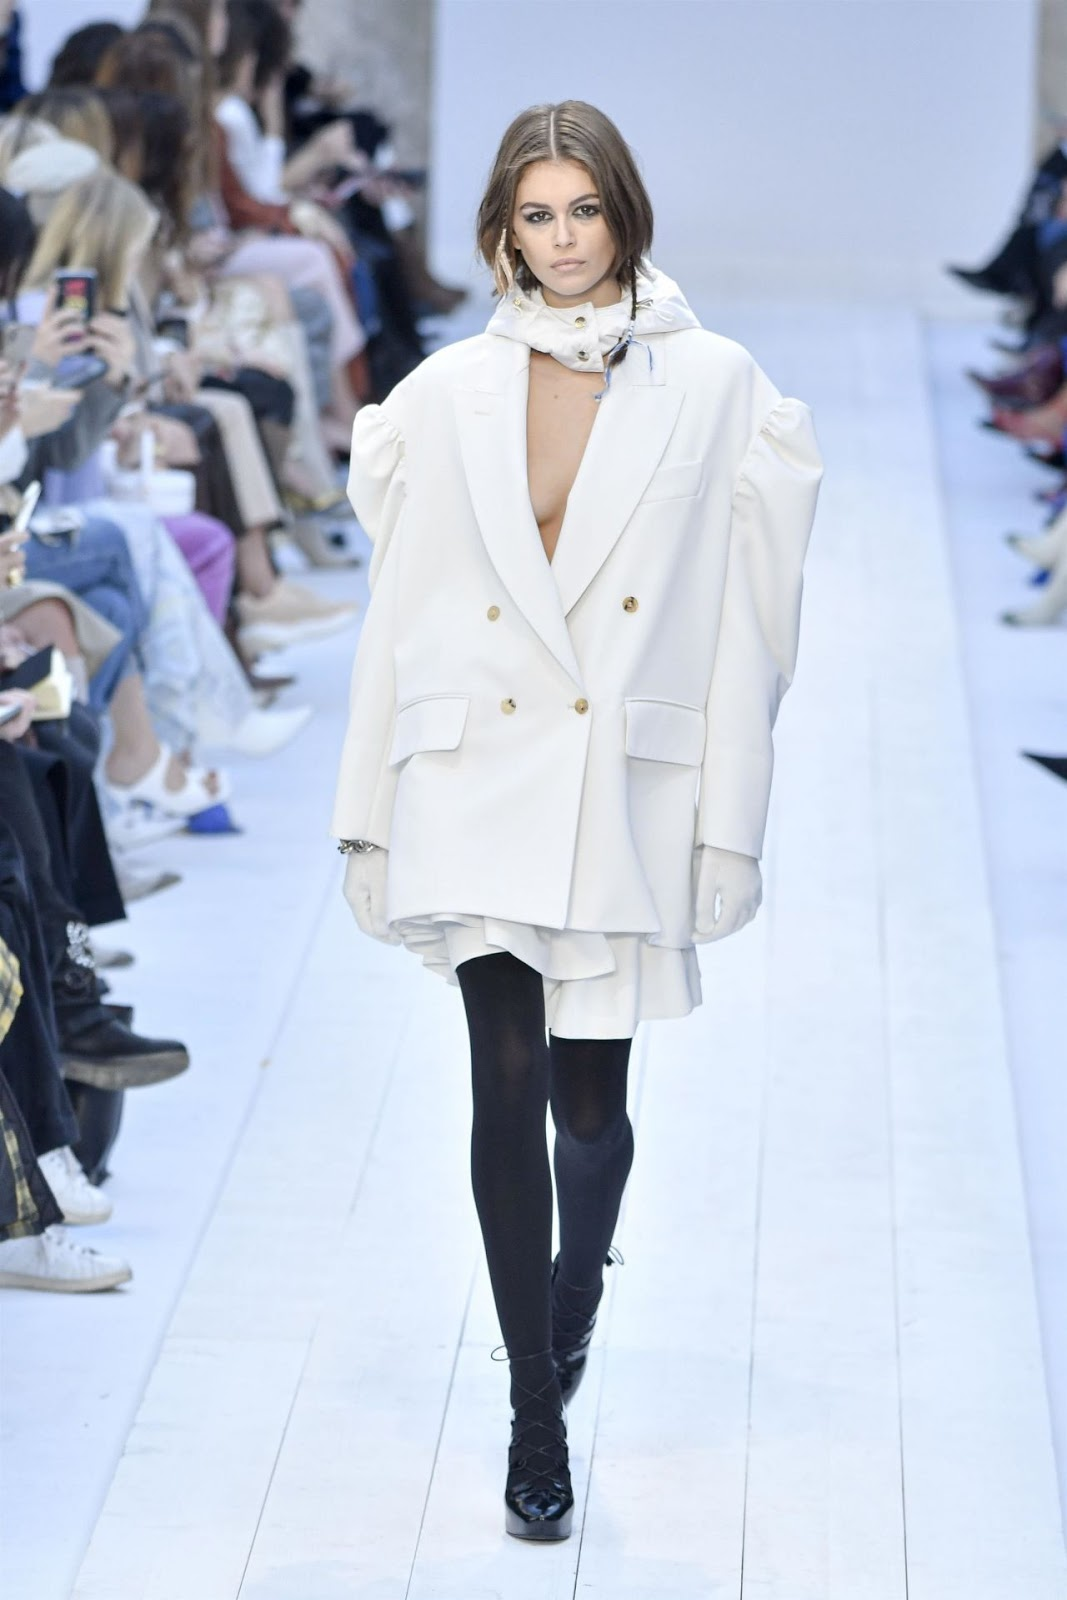 Braless Kaia Gerber sports a plunging oversized suit jacket at Max Mara MFW show